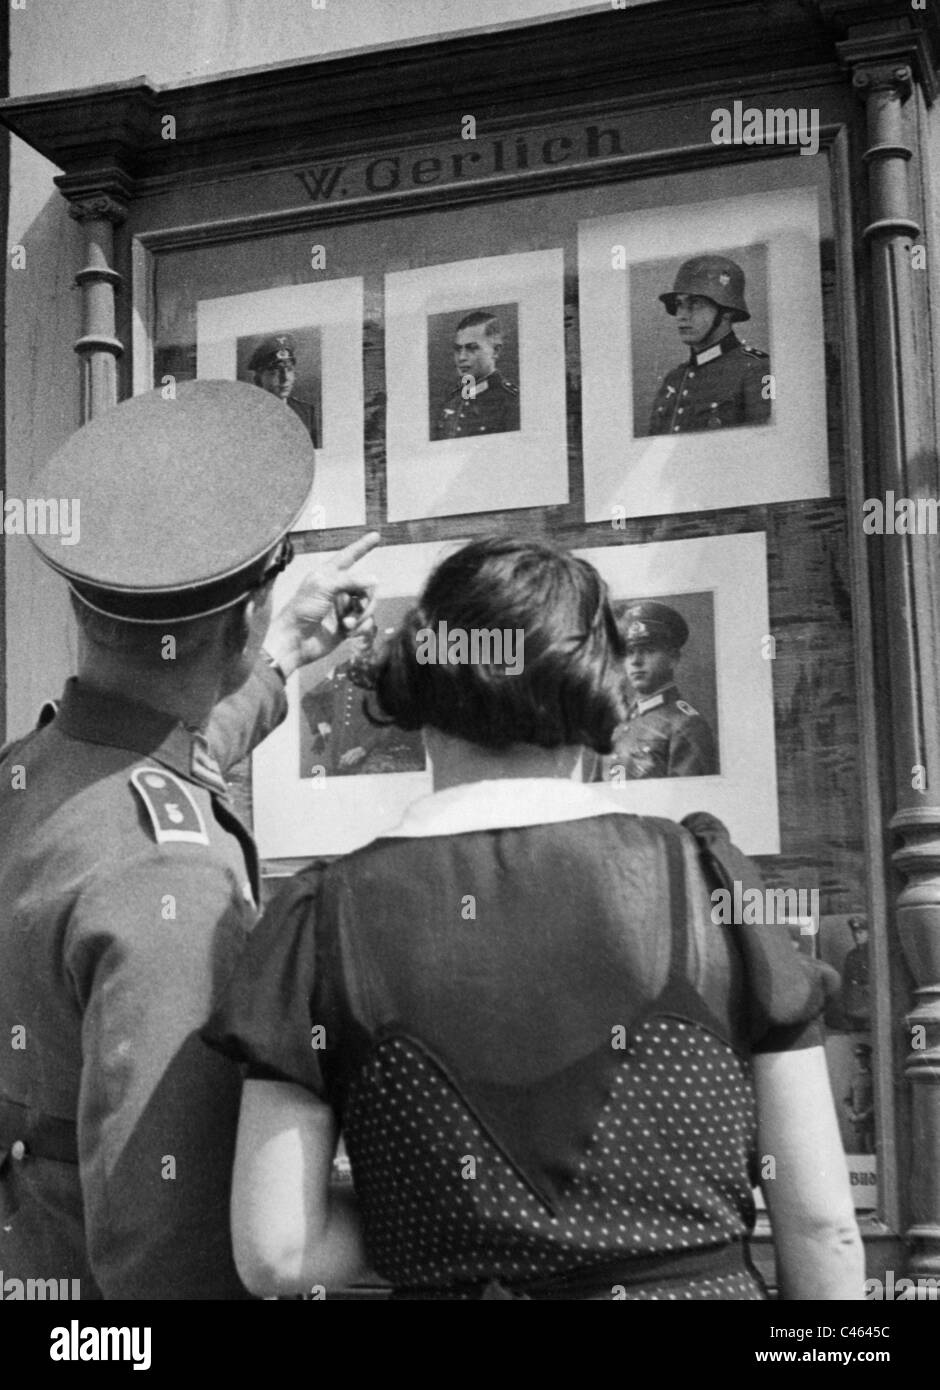 Portraits of soldiers, 1935 - Stock Image